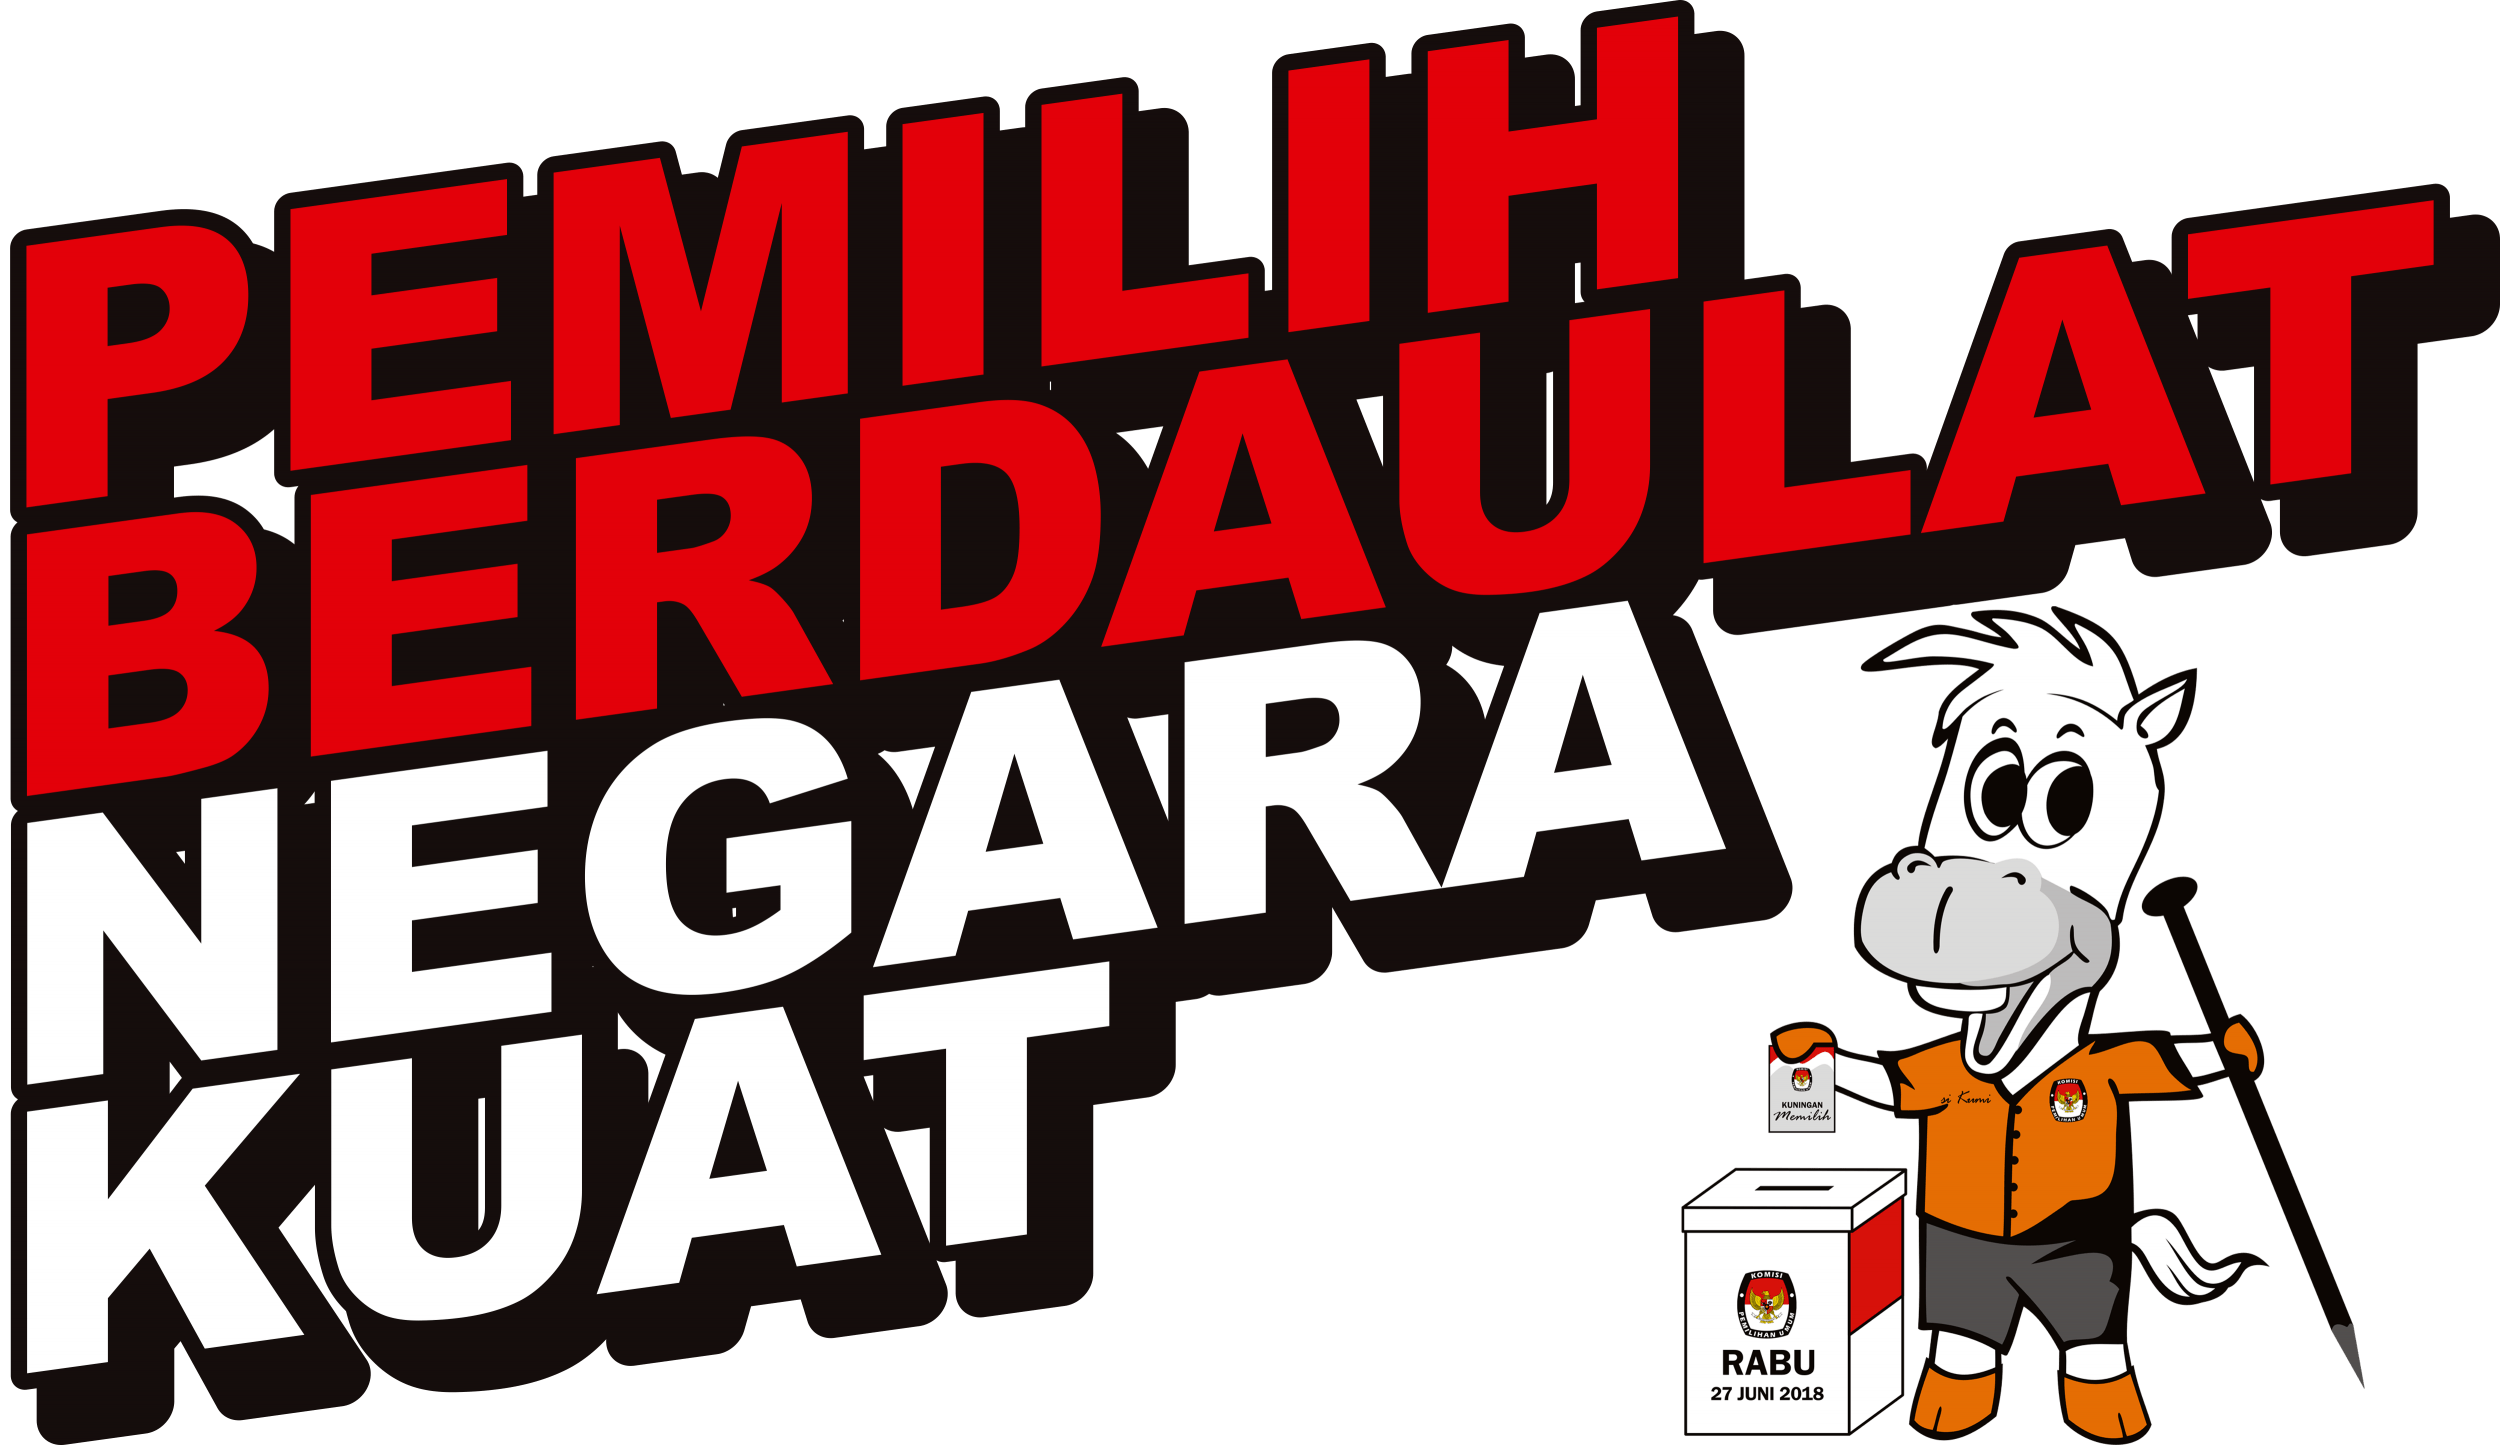 http://news.unimal.ac.id/index/single/34/universitas-malikussaleh-bahas-titik-kritis-pemilu-2019